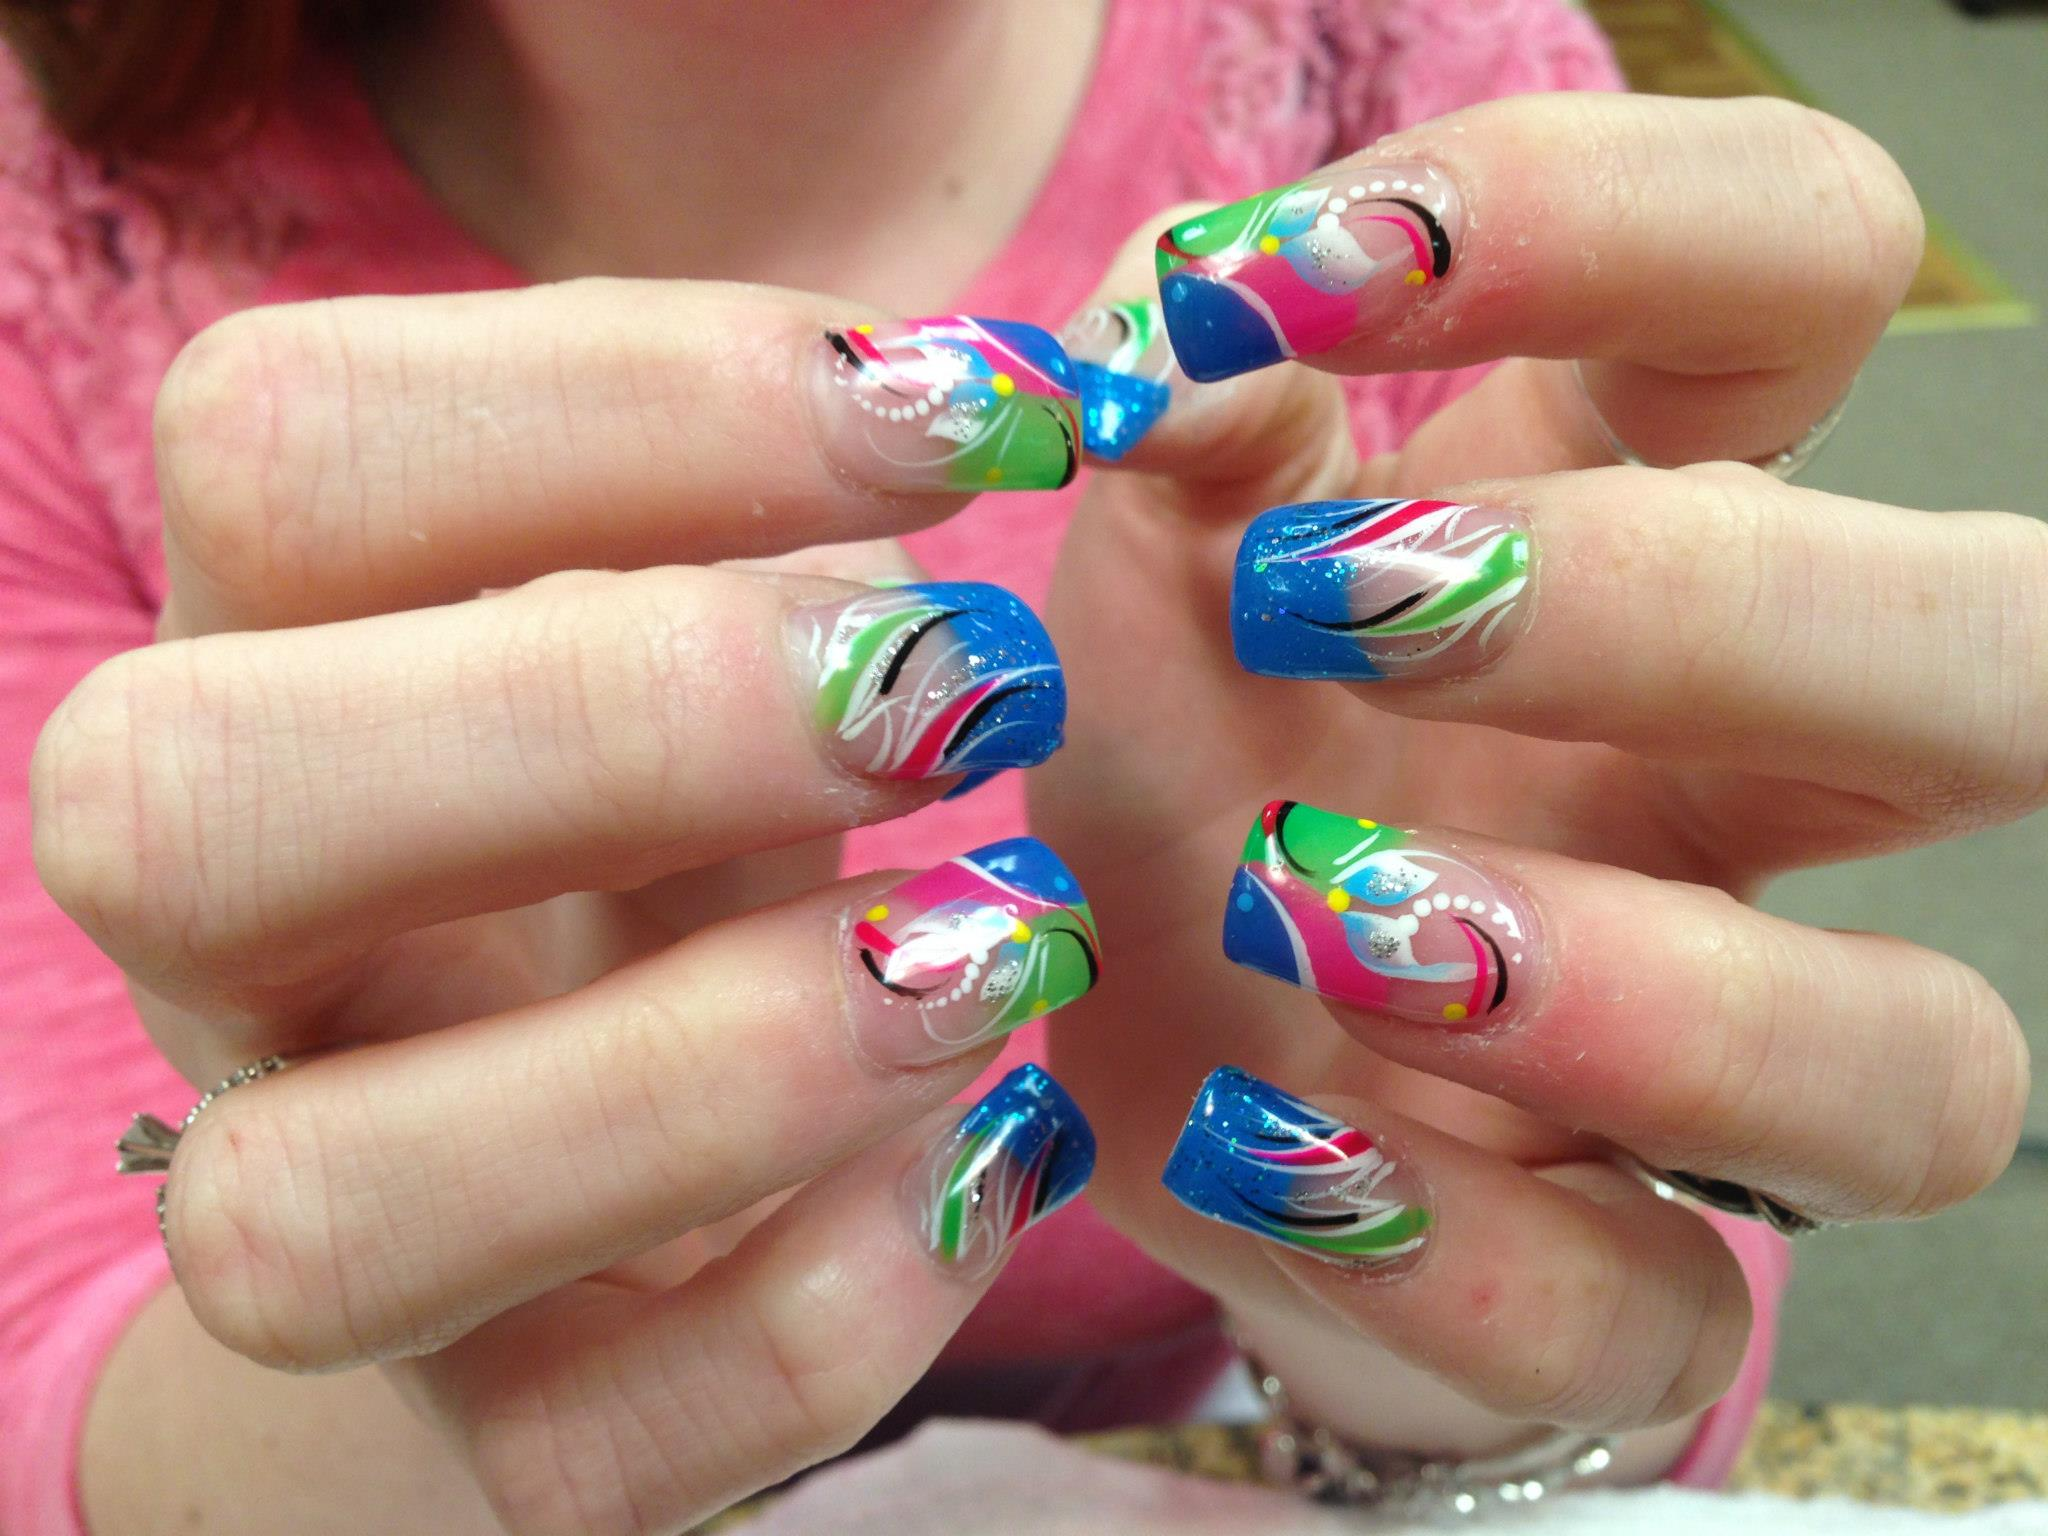 Main Menu Skip To Content Home Menu Services Facial Treatments Coupons Gift Cards Testimonies Photo Gallery Contact Us Join Our Team Blog Top Nails Voted Best Nail Salon In Clarksville Tn 37042 See More Menagerie Of Colors Nail Art Design By